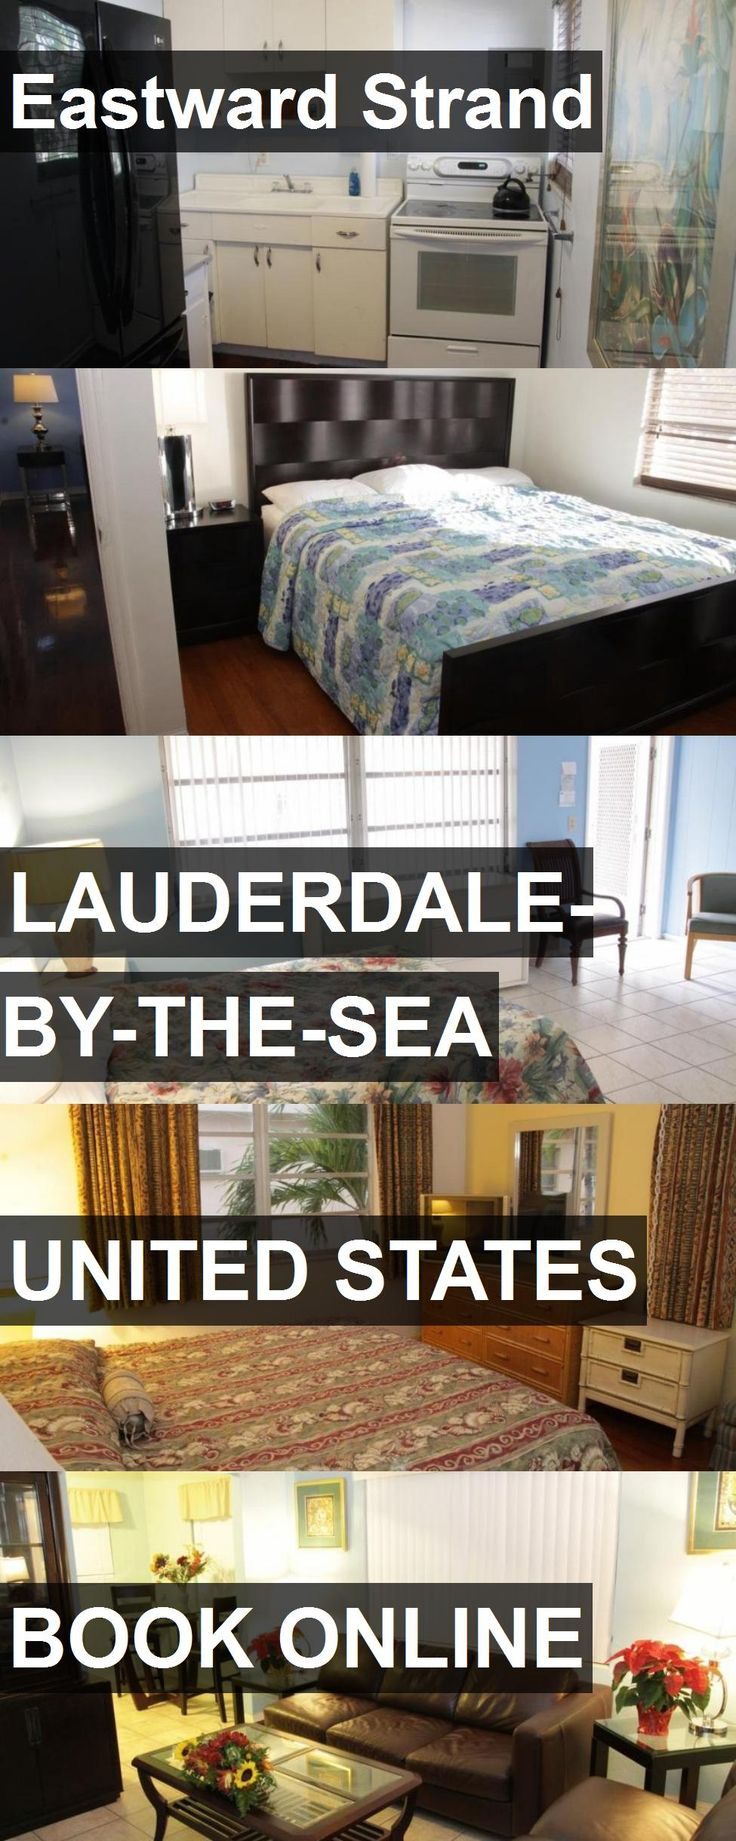 Hotel Eastward Strand in Lauderdale-By-The-Sea, United States. For more information, photos, reviews and best prices please follow the link. #UnitedStates #Lauderdale-By-The-Sea #EastwardStrand #hotel #travel #vacation